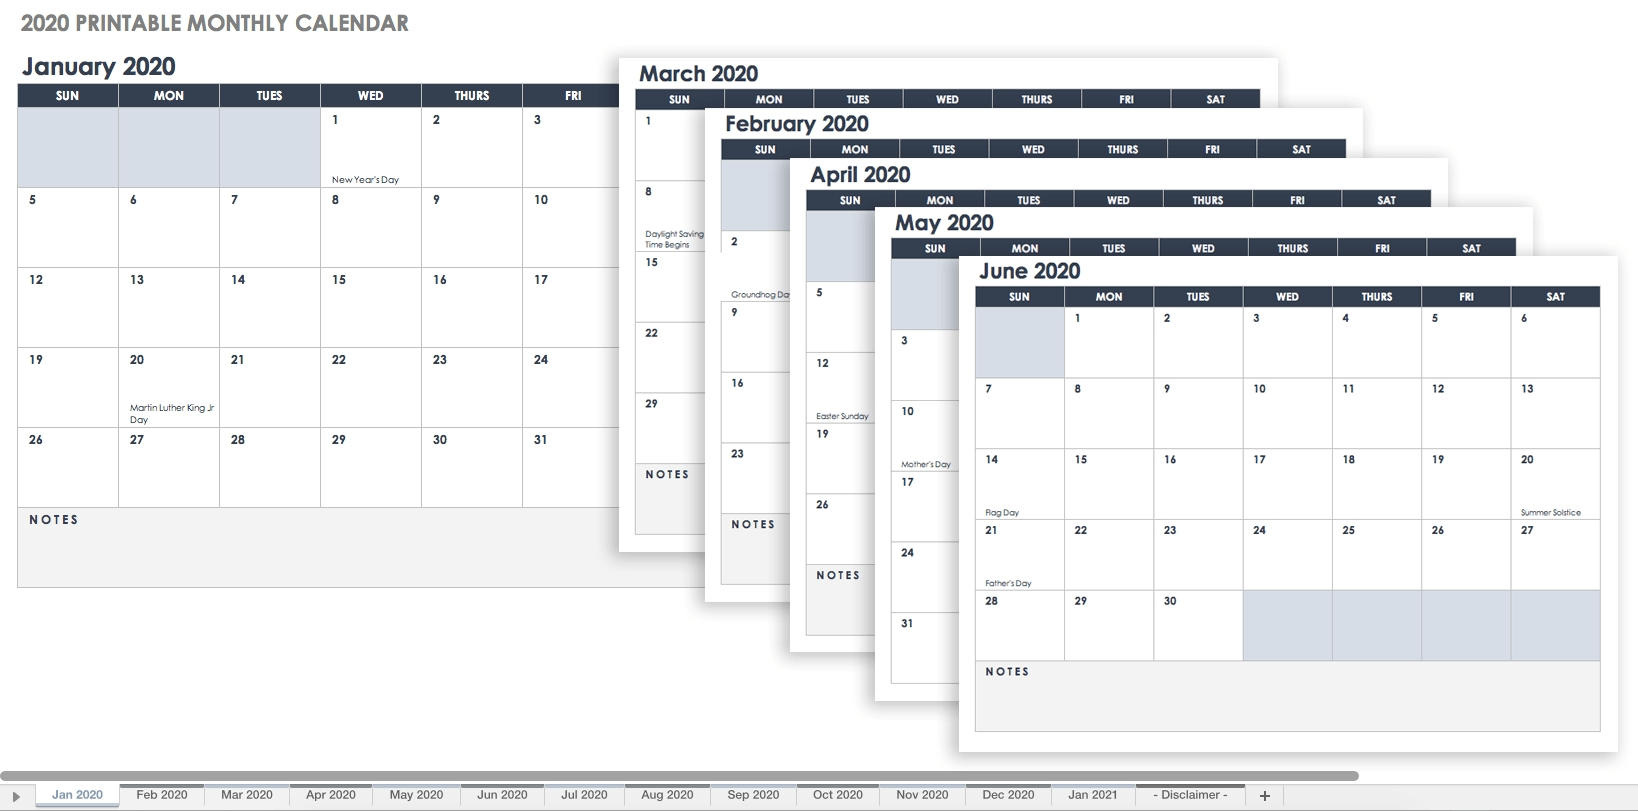 15 Free Monthly Calendar Templates | Smartsheet for Printable Calendar Month By Month